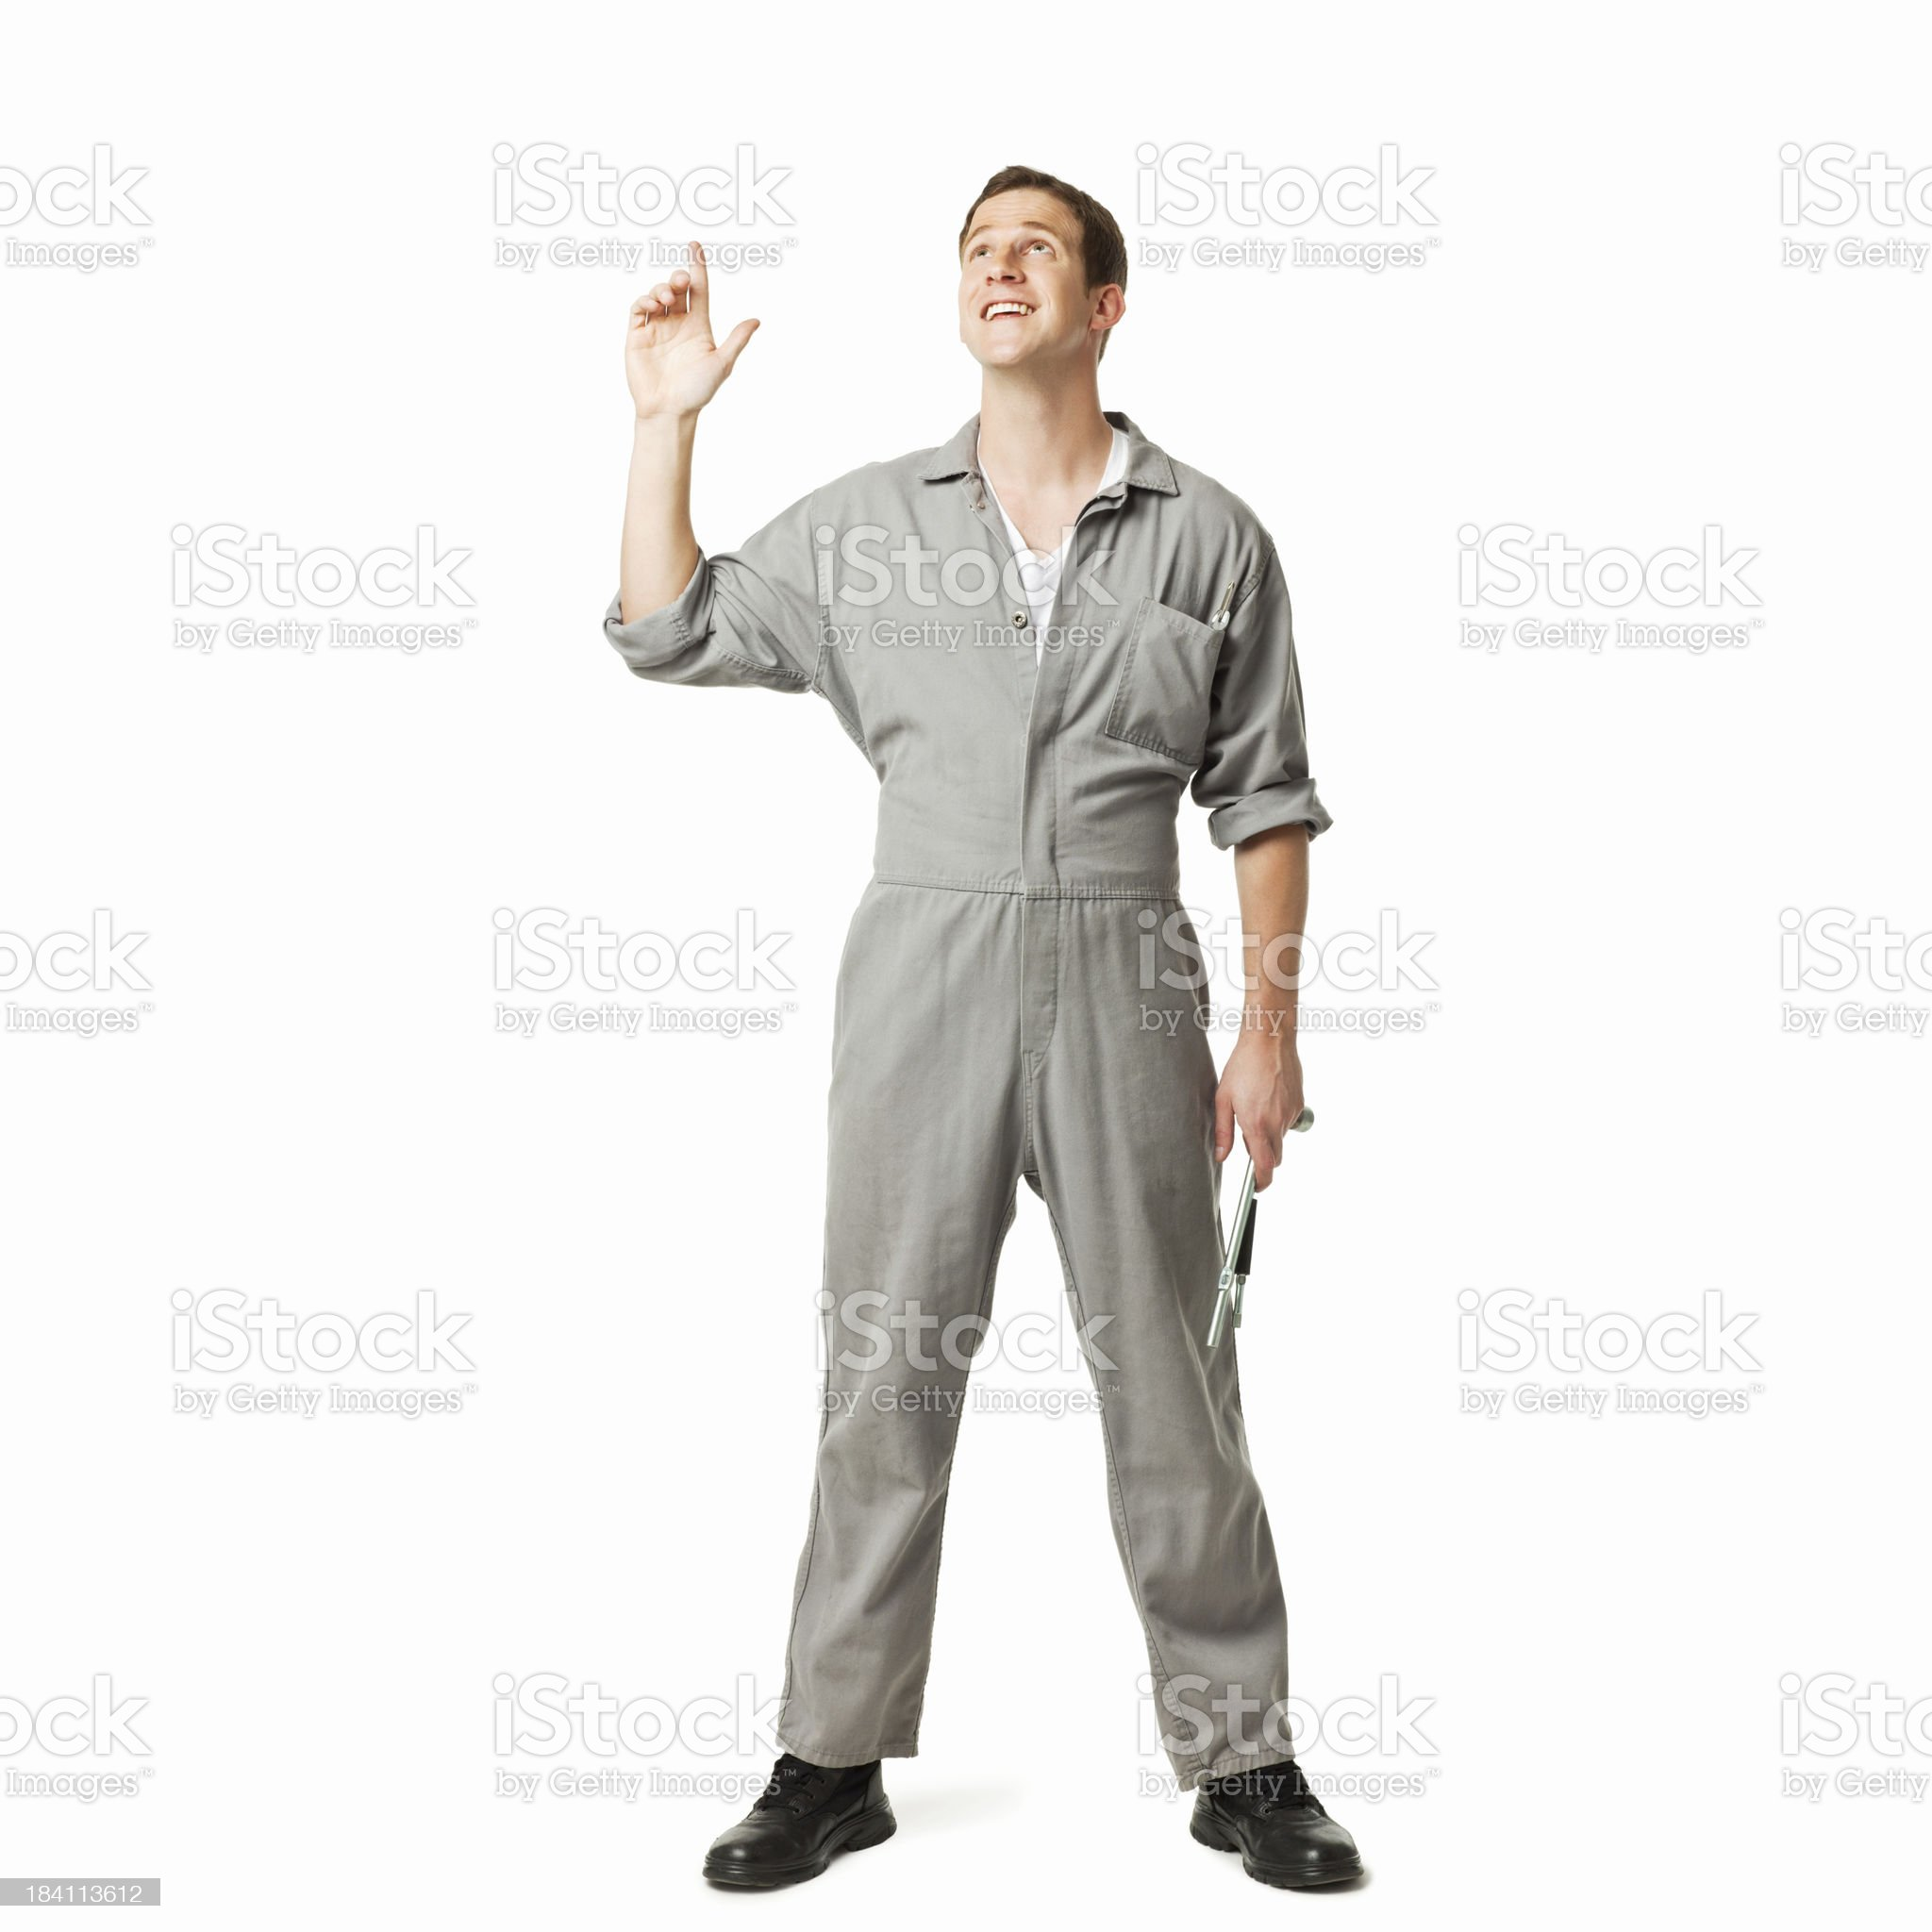 Service Technician Pointing Up - Isolated royalty-free stock photo